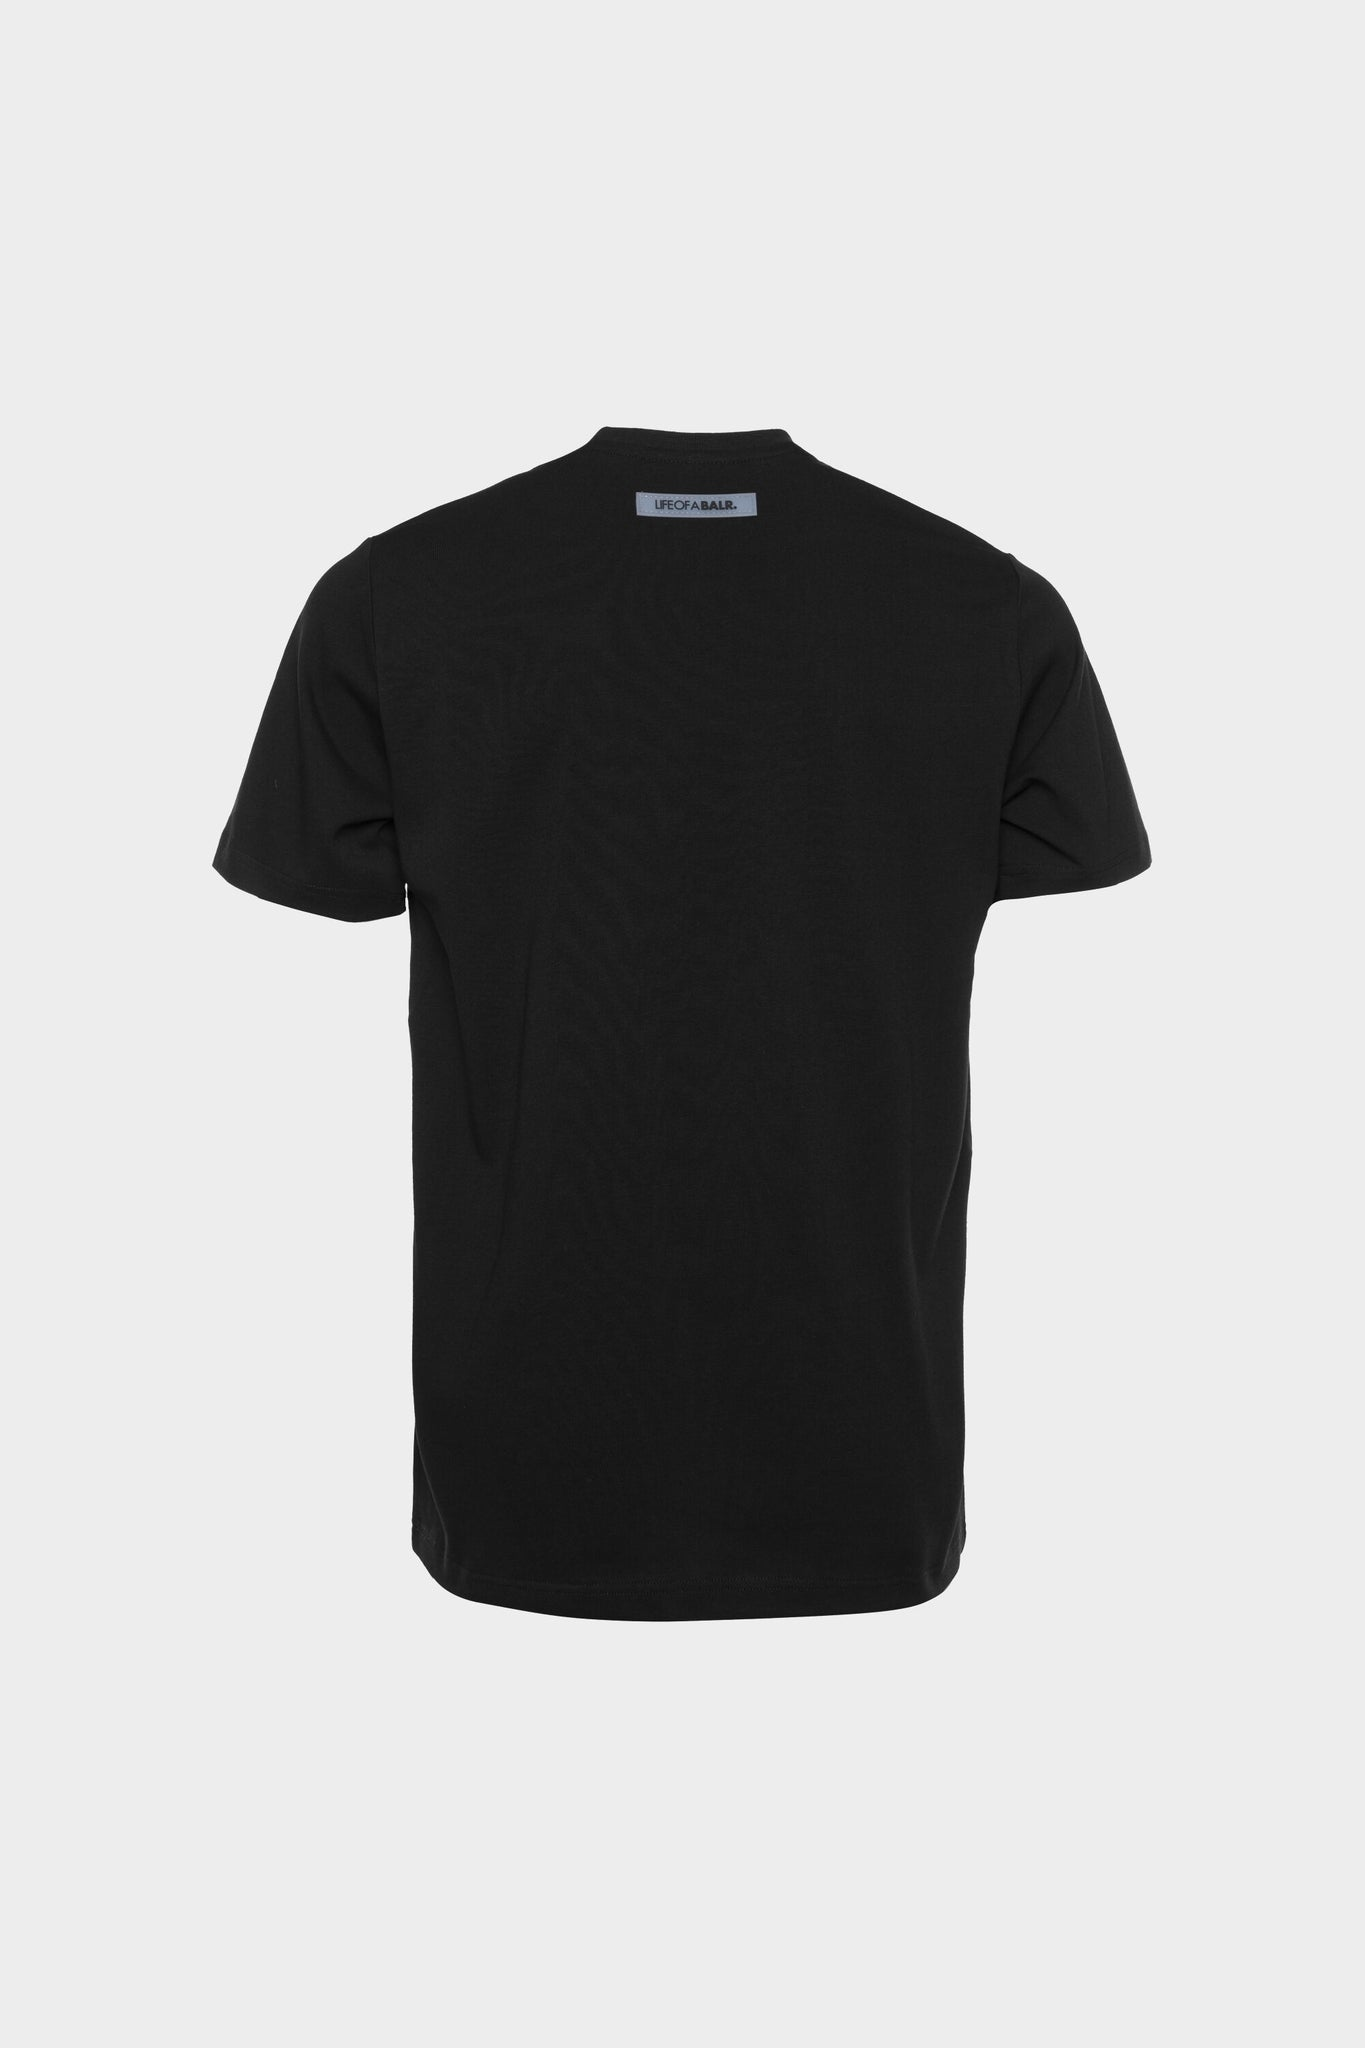 BALR. Waterfall Straight T-Shirt Black